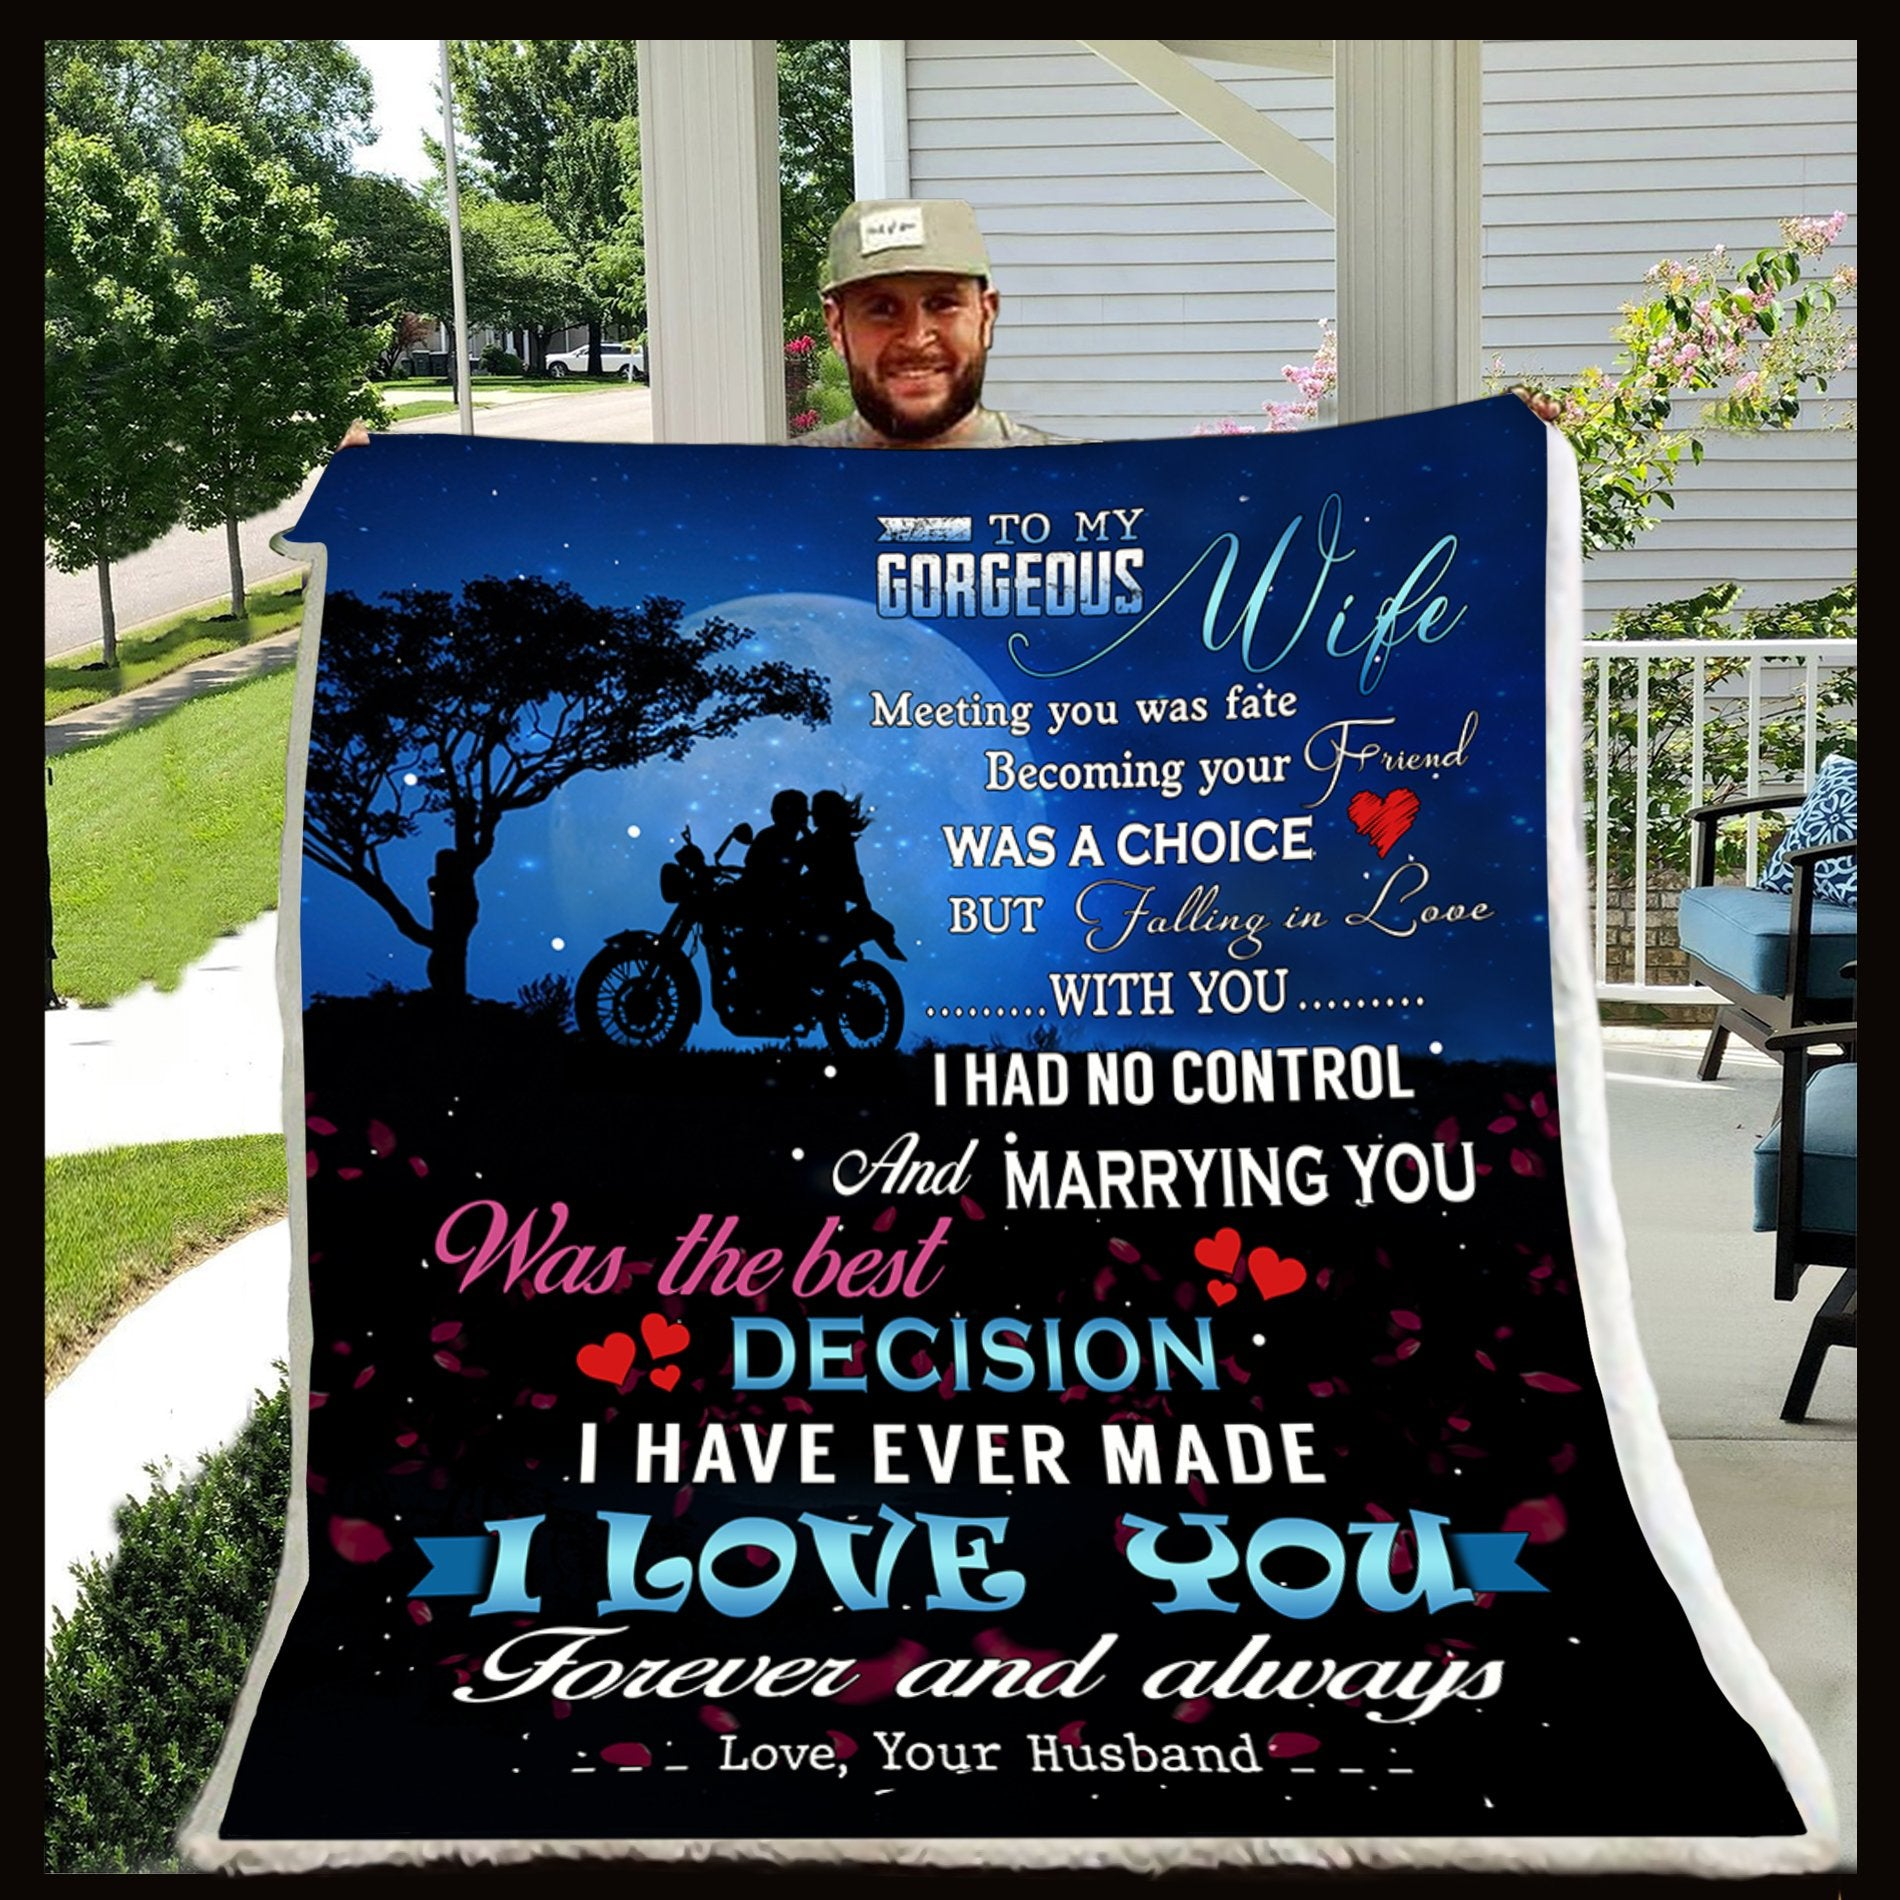 (CL53) LVL Biker blanket - Husband to wife - Meeting you was fate